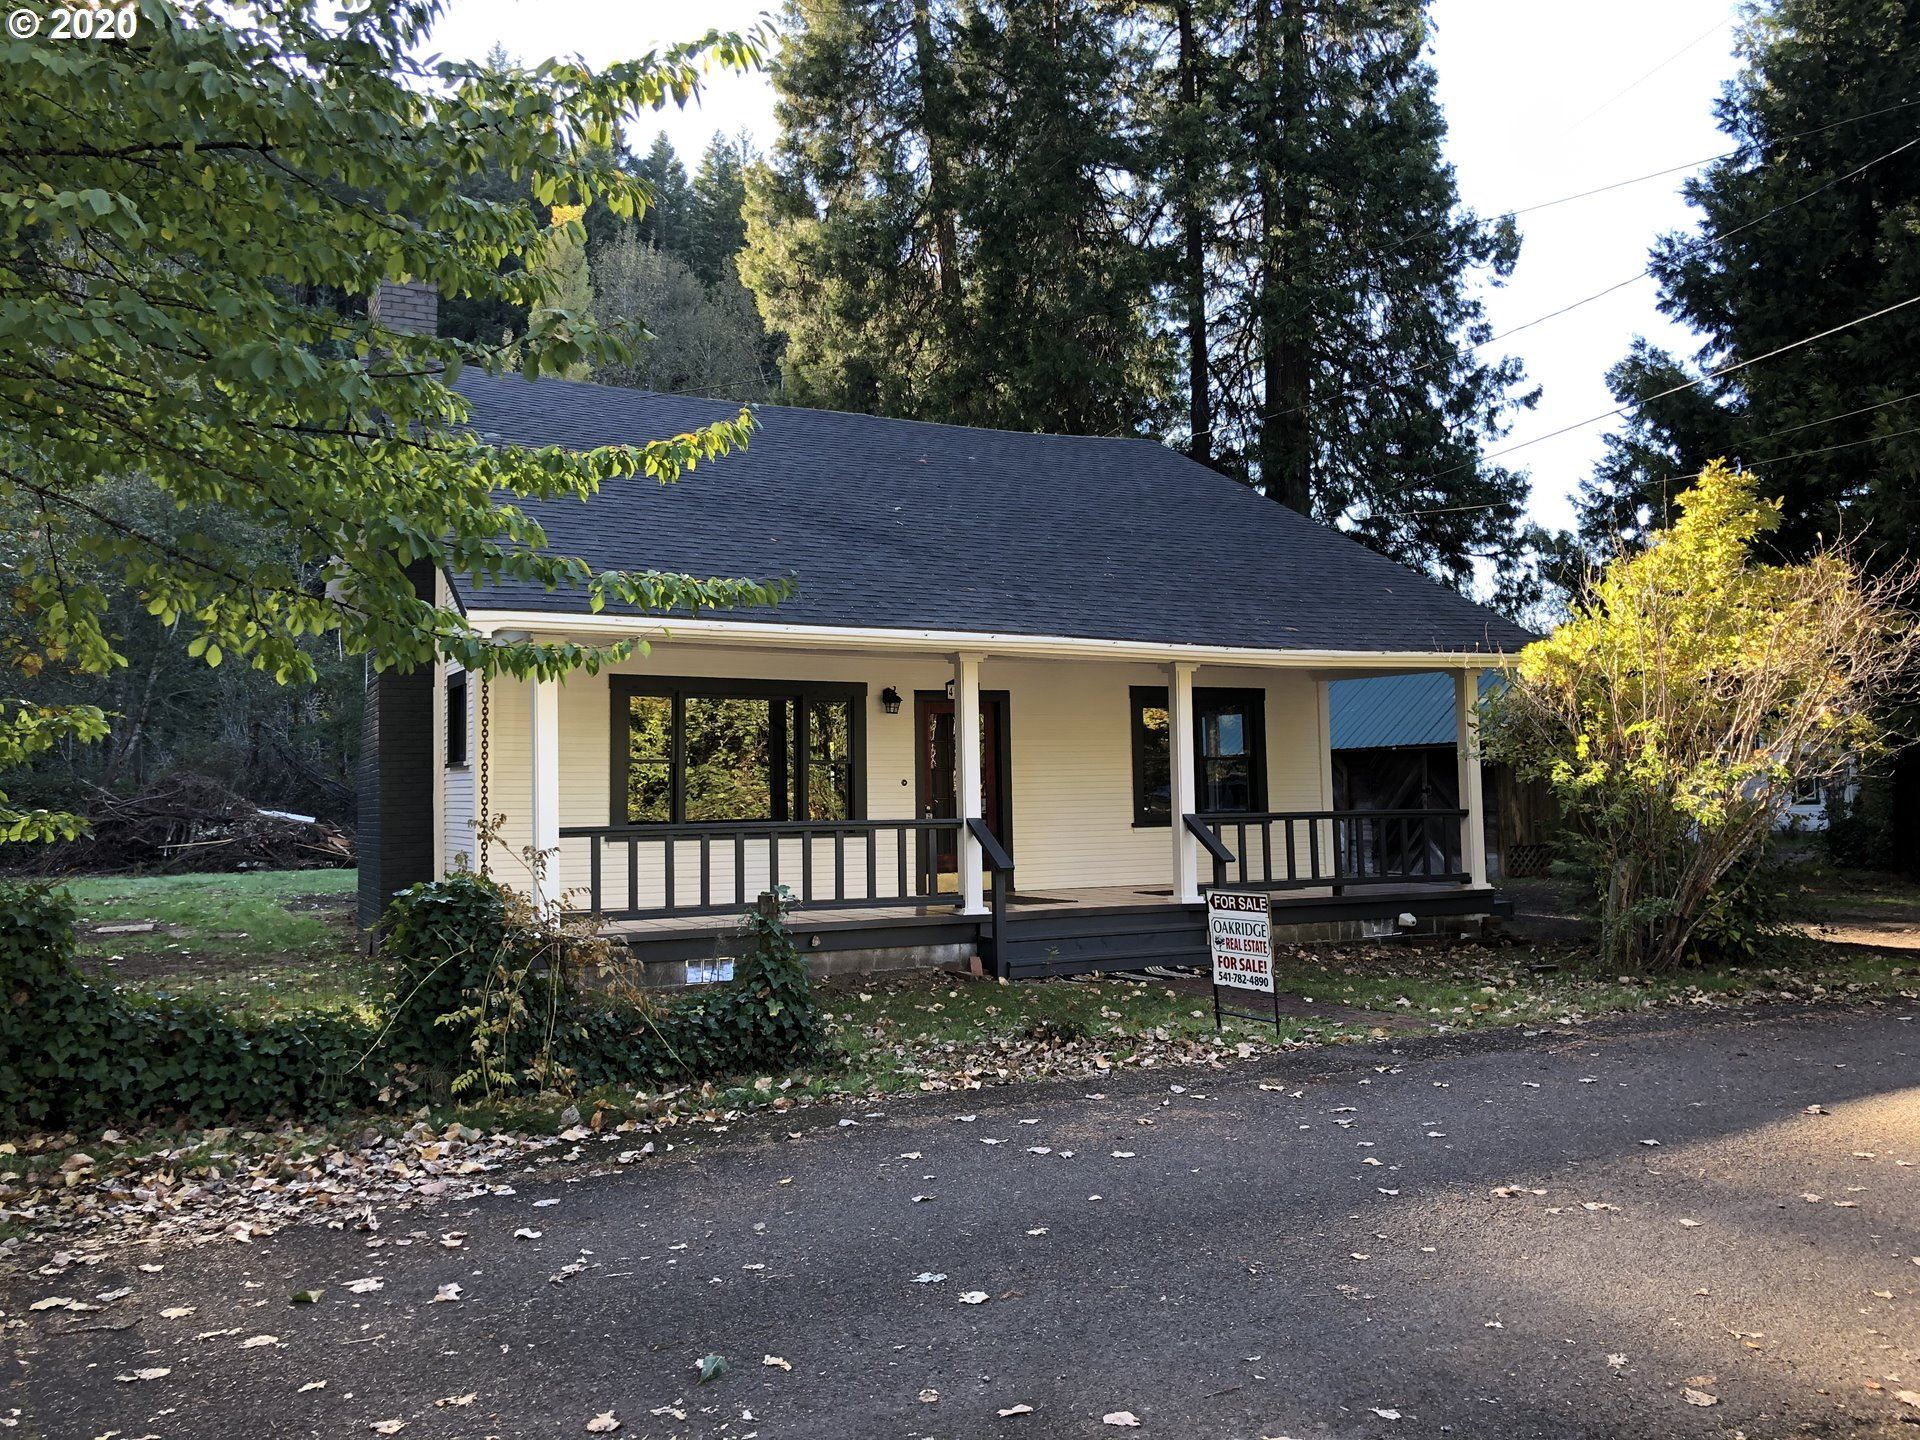 Photo for 47338 1ST ST, Westfir, OR 97492 (MLS # 20062208)